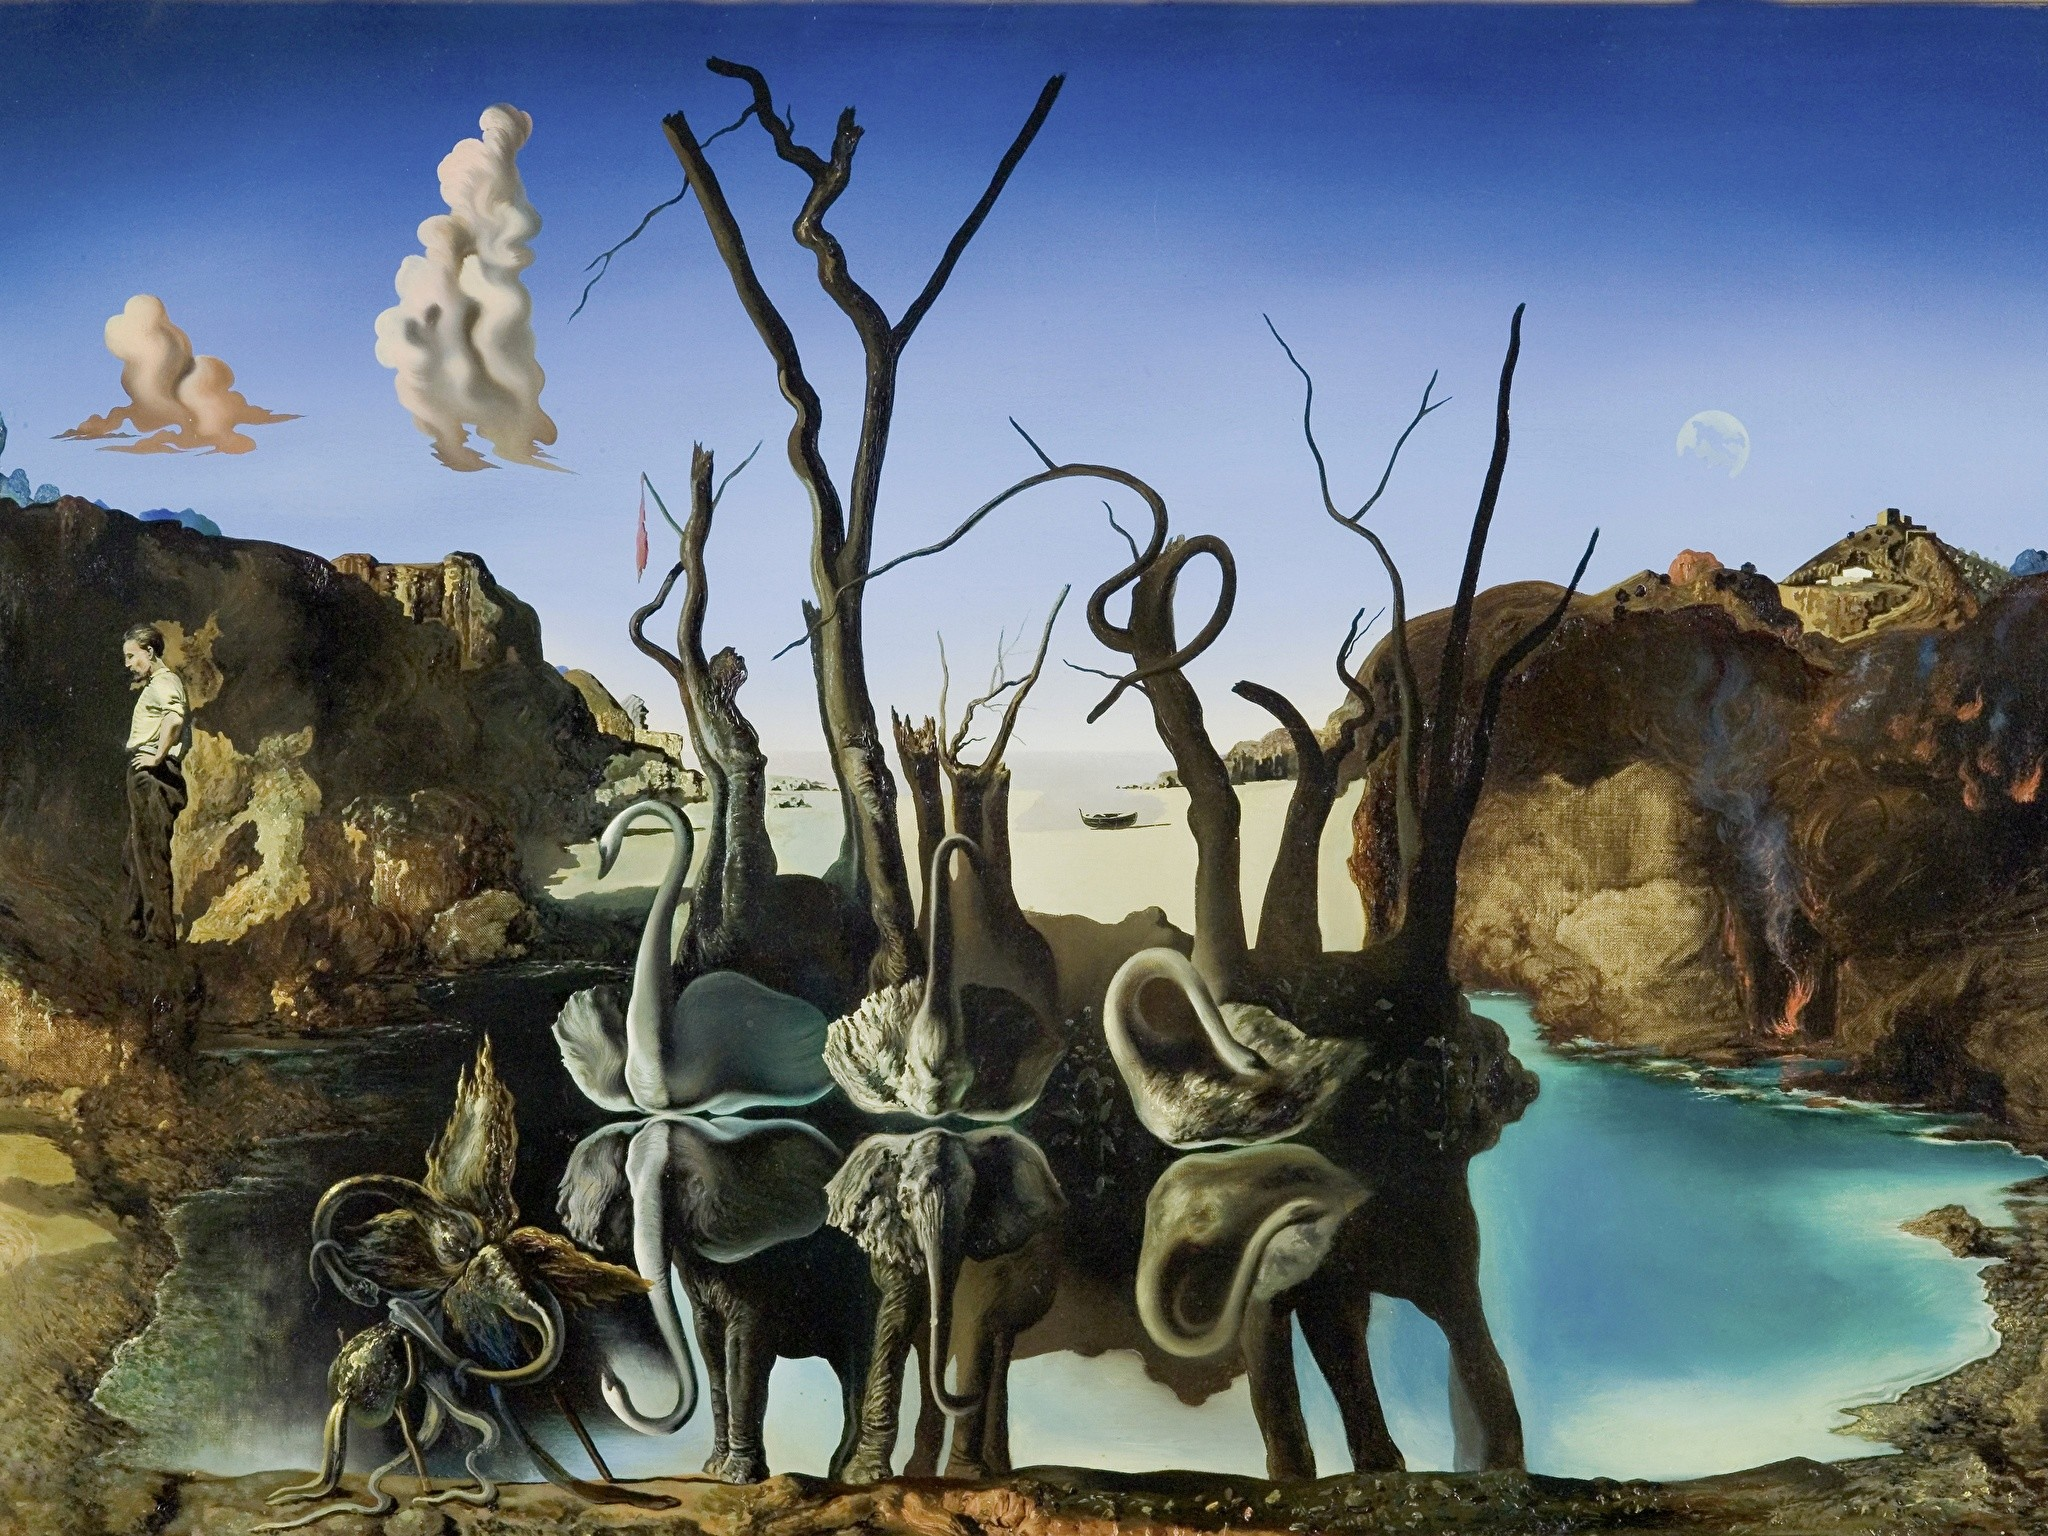 2048x1536 Wallpapers Salvador Dali Pictorial art Swans Reflecting Elephants Pictorial  art